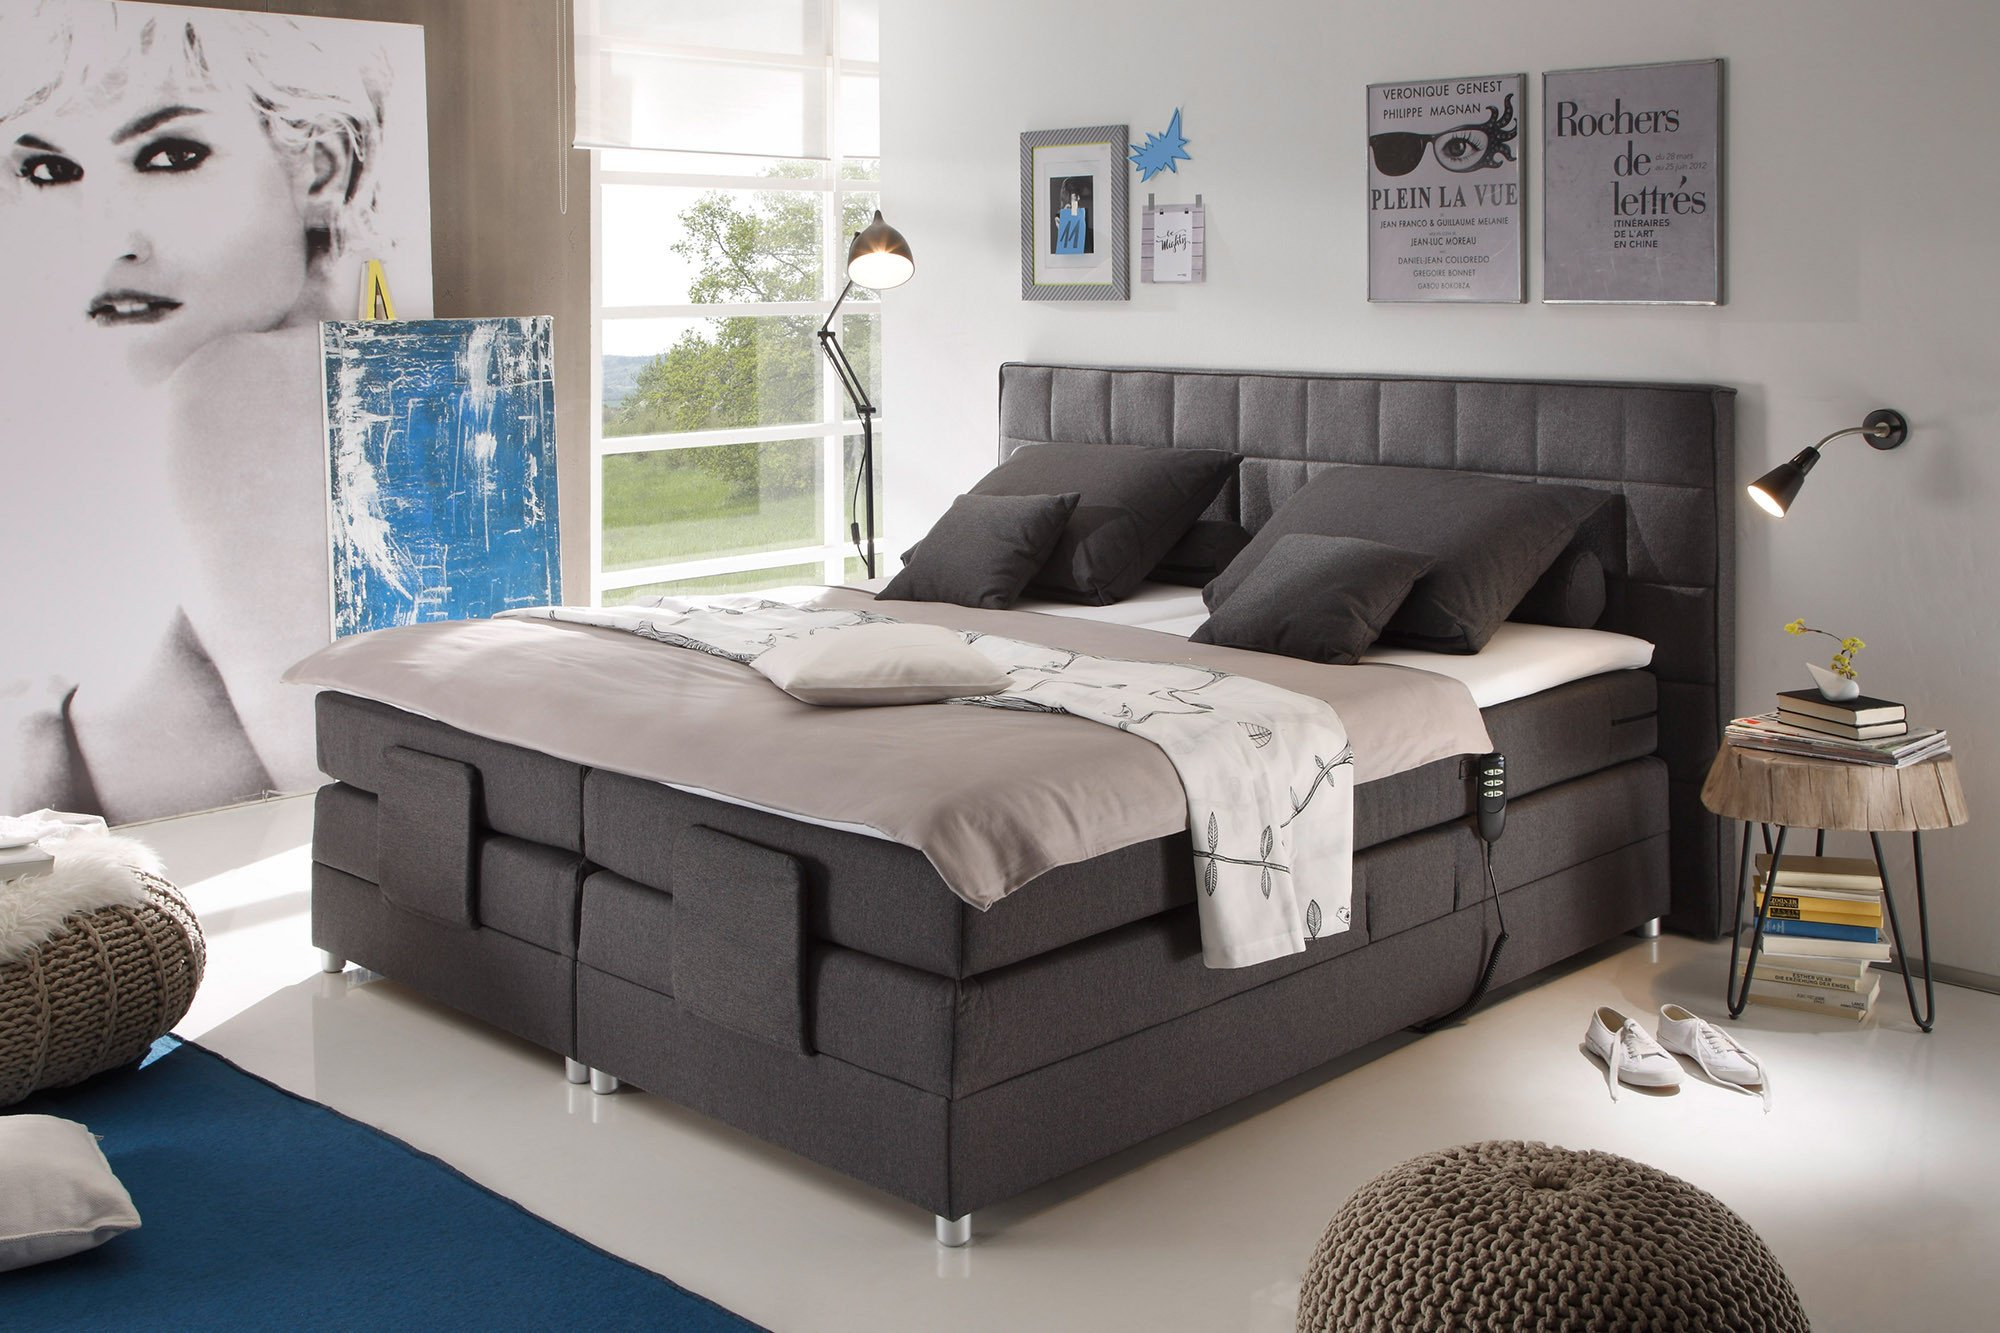 black red white boxspringbett montana mit kopf und fu teilverstellung m bel letz ihr online. Black Bedroom Furniture Sets. Home Design Ideas